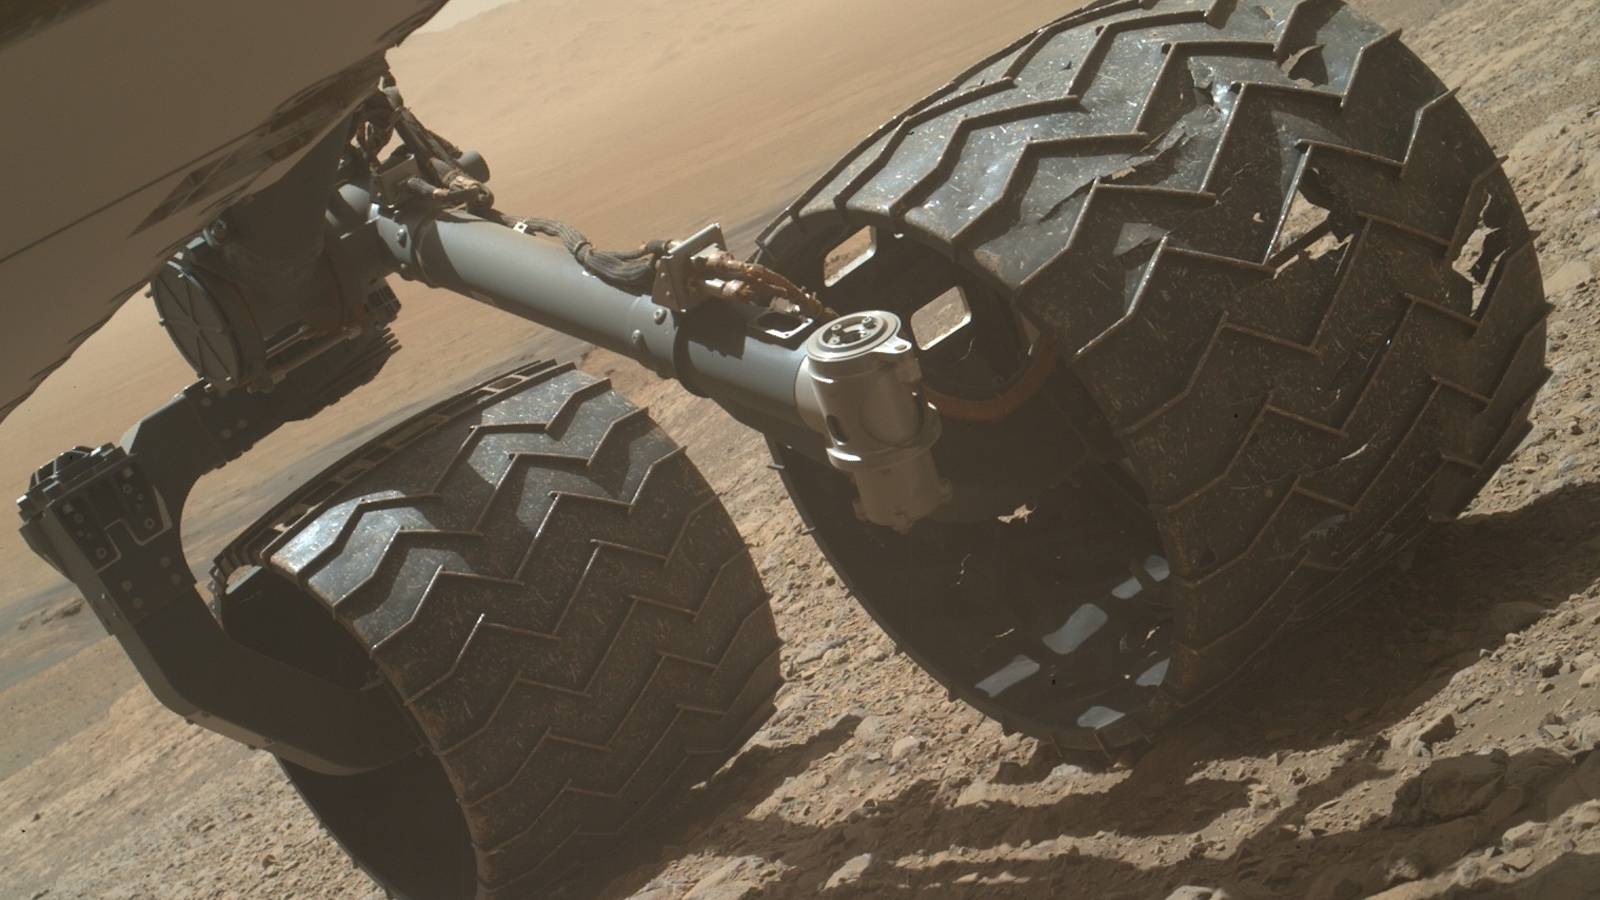 slide 2 - rover wheels